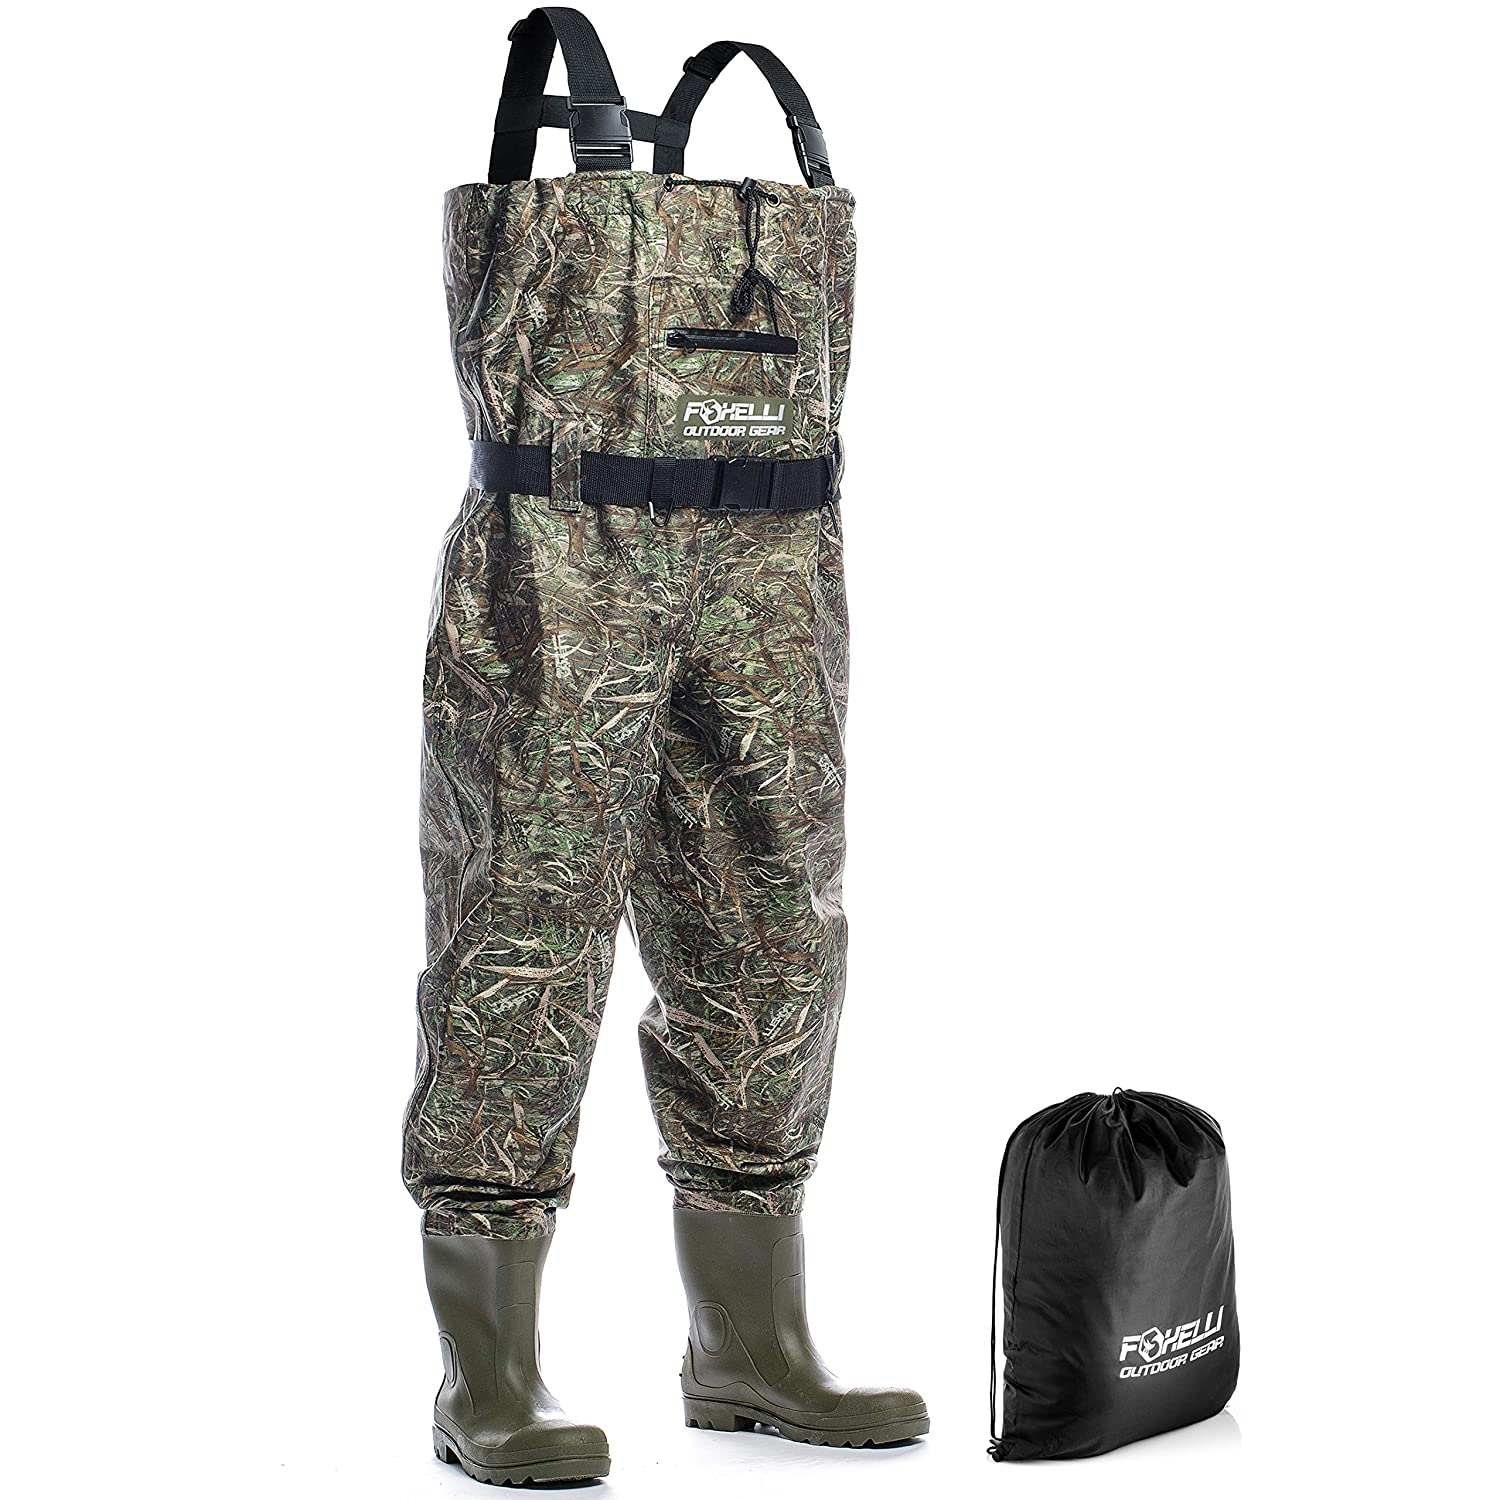 Foxelli Nylon Chest Waders Camo Fishing Waders for Men with Boots – Use for Fly Fishing, Duck Hunting, Emergency Flooding 100 Waterproof, Carrying Bag Included